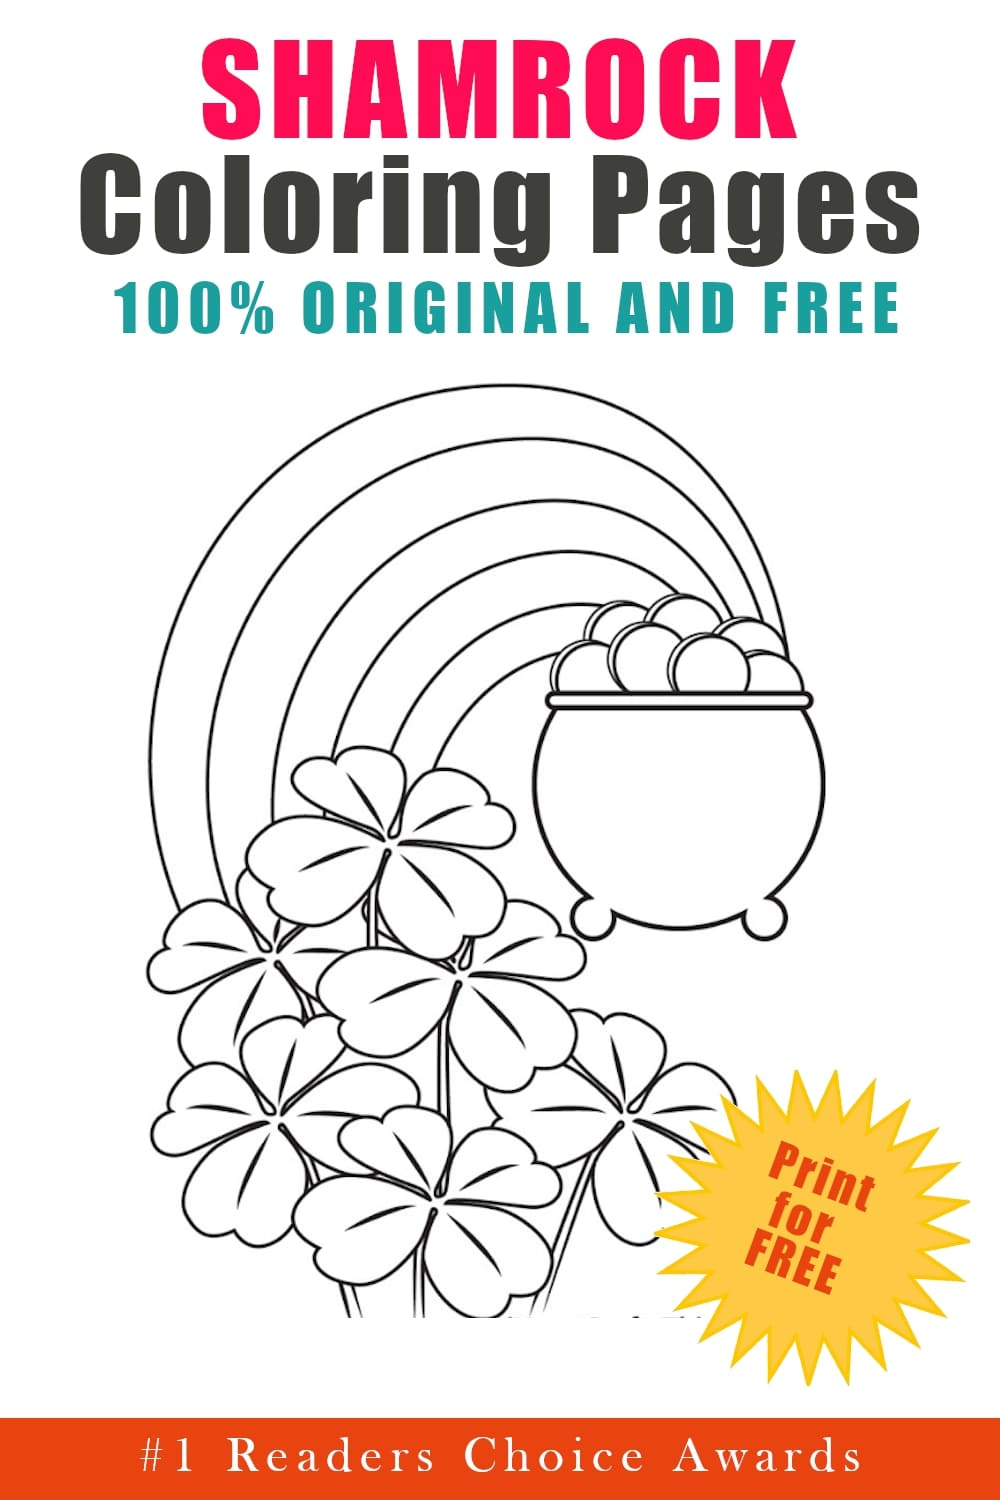 original and free shamrock coloring pages